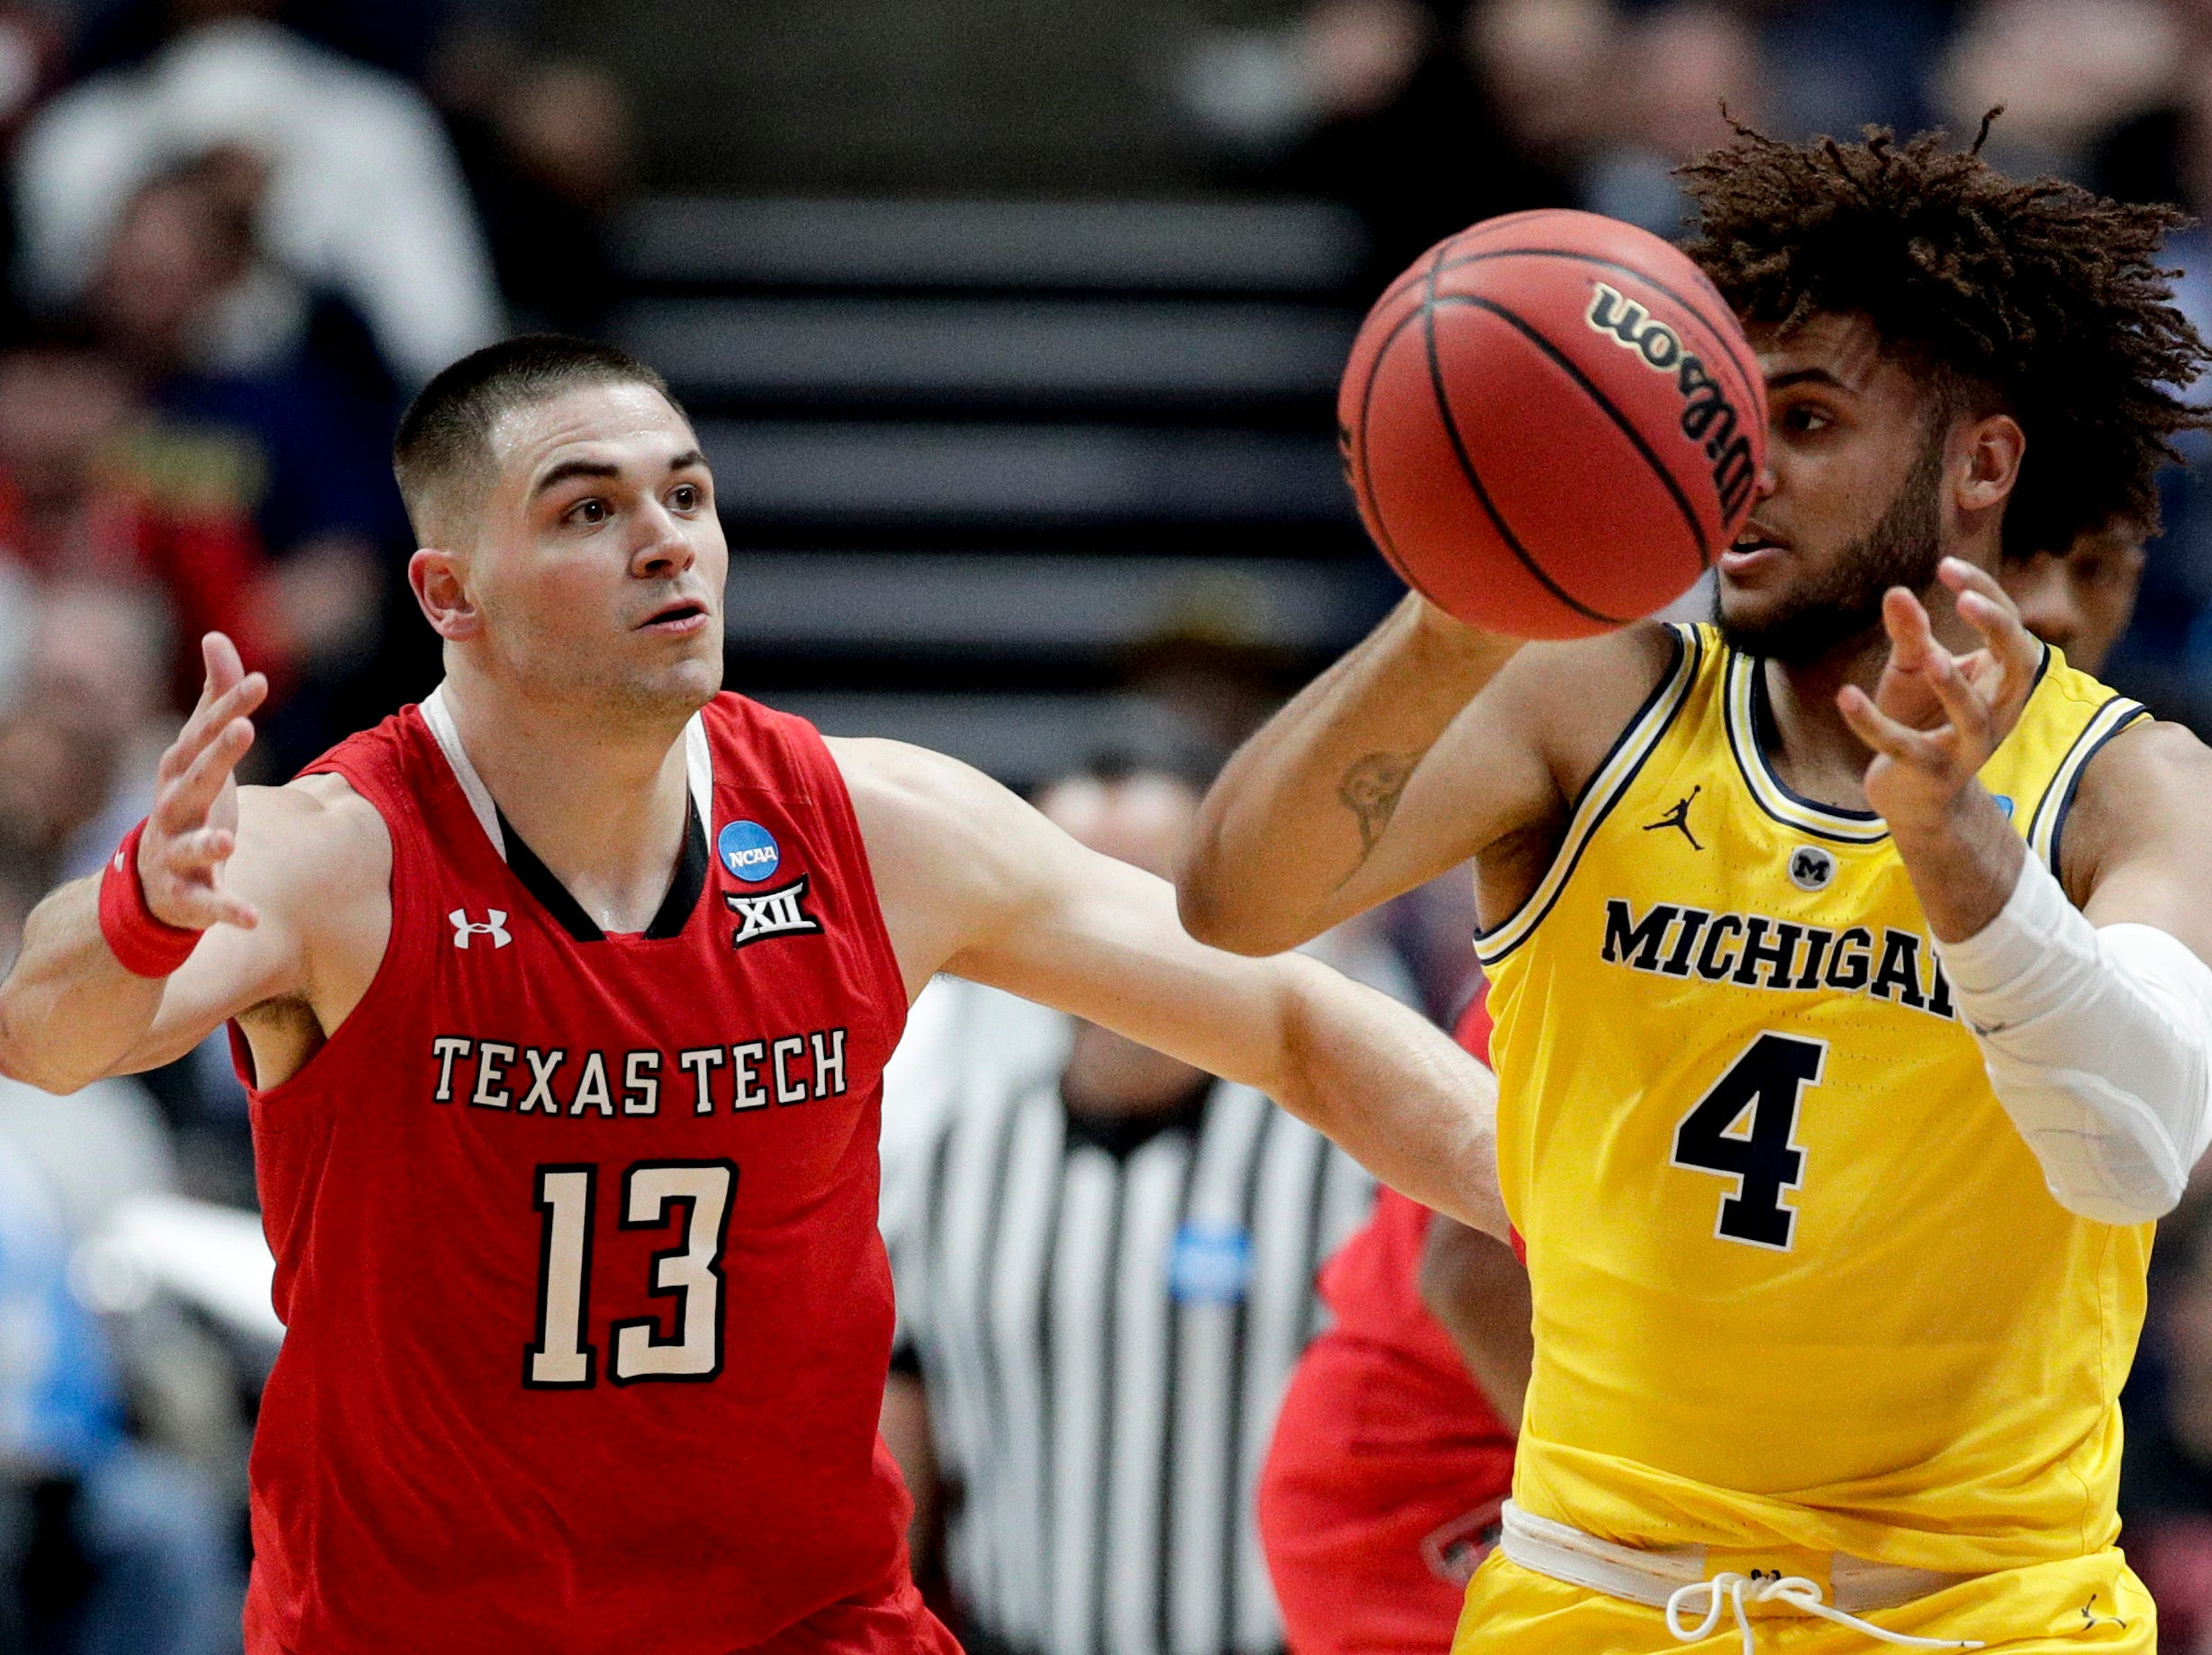 Michigan forward Isaiah Livers, right, passes the ball around Texas Tech guard Matt Mooney during the first half an NCAA men's college basketball tournament West Region semifinal Thursday, March 28, 2019, in Anaheim, Calif. (AP Photo/Jae C. Hong)